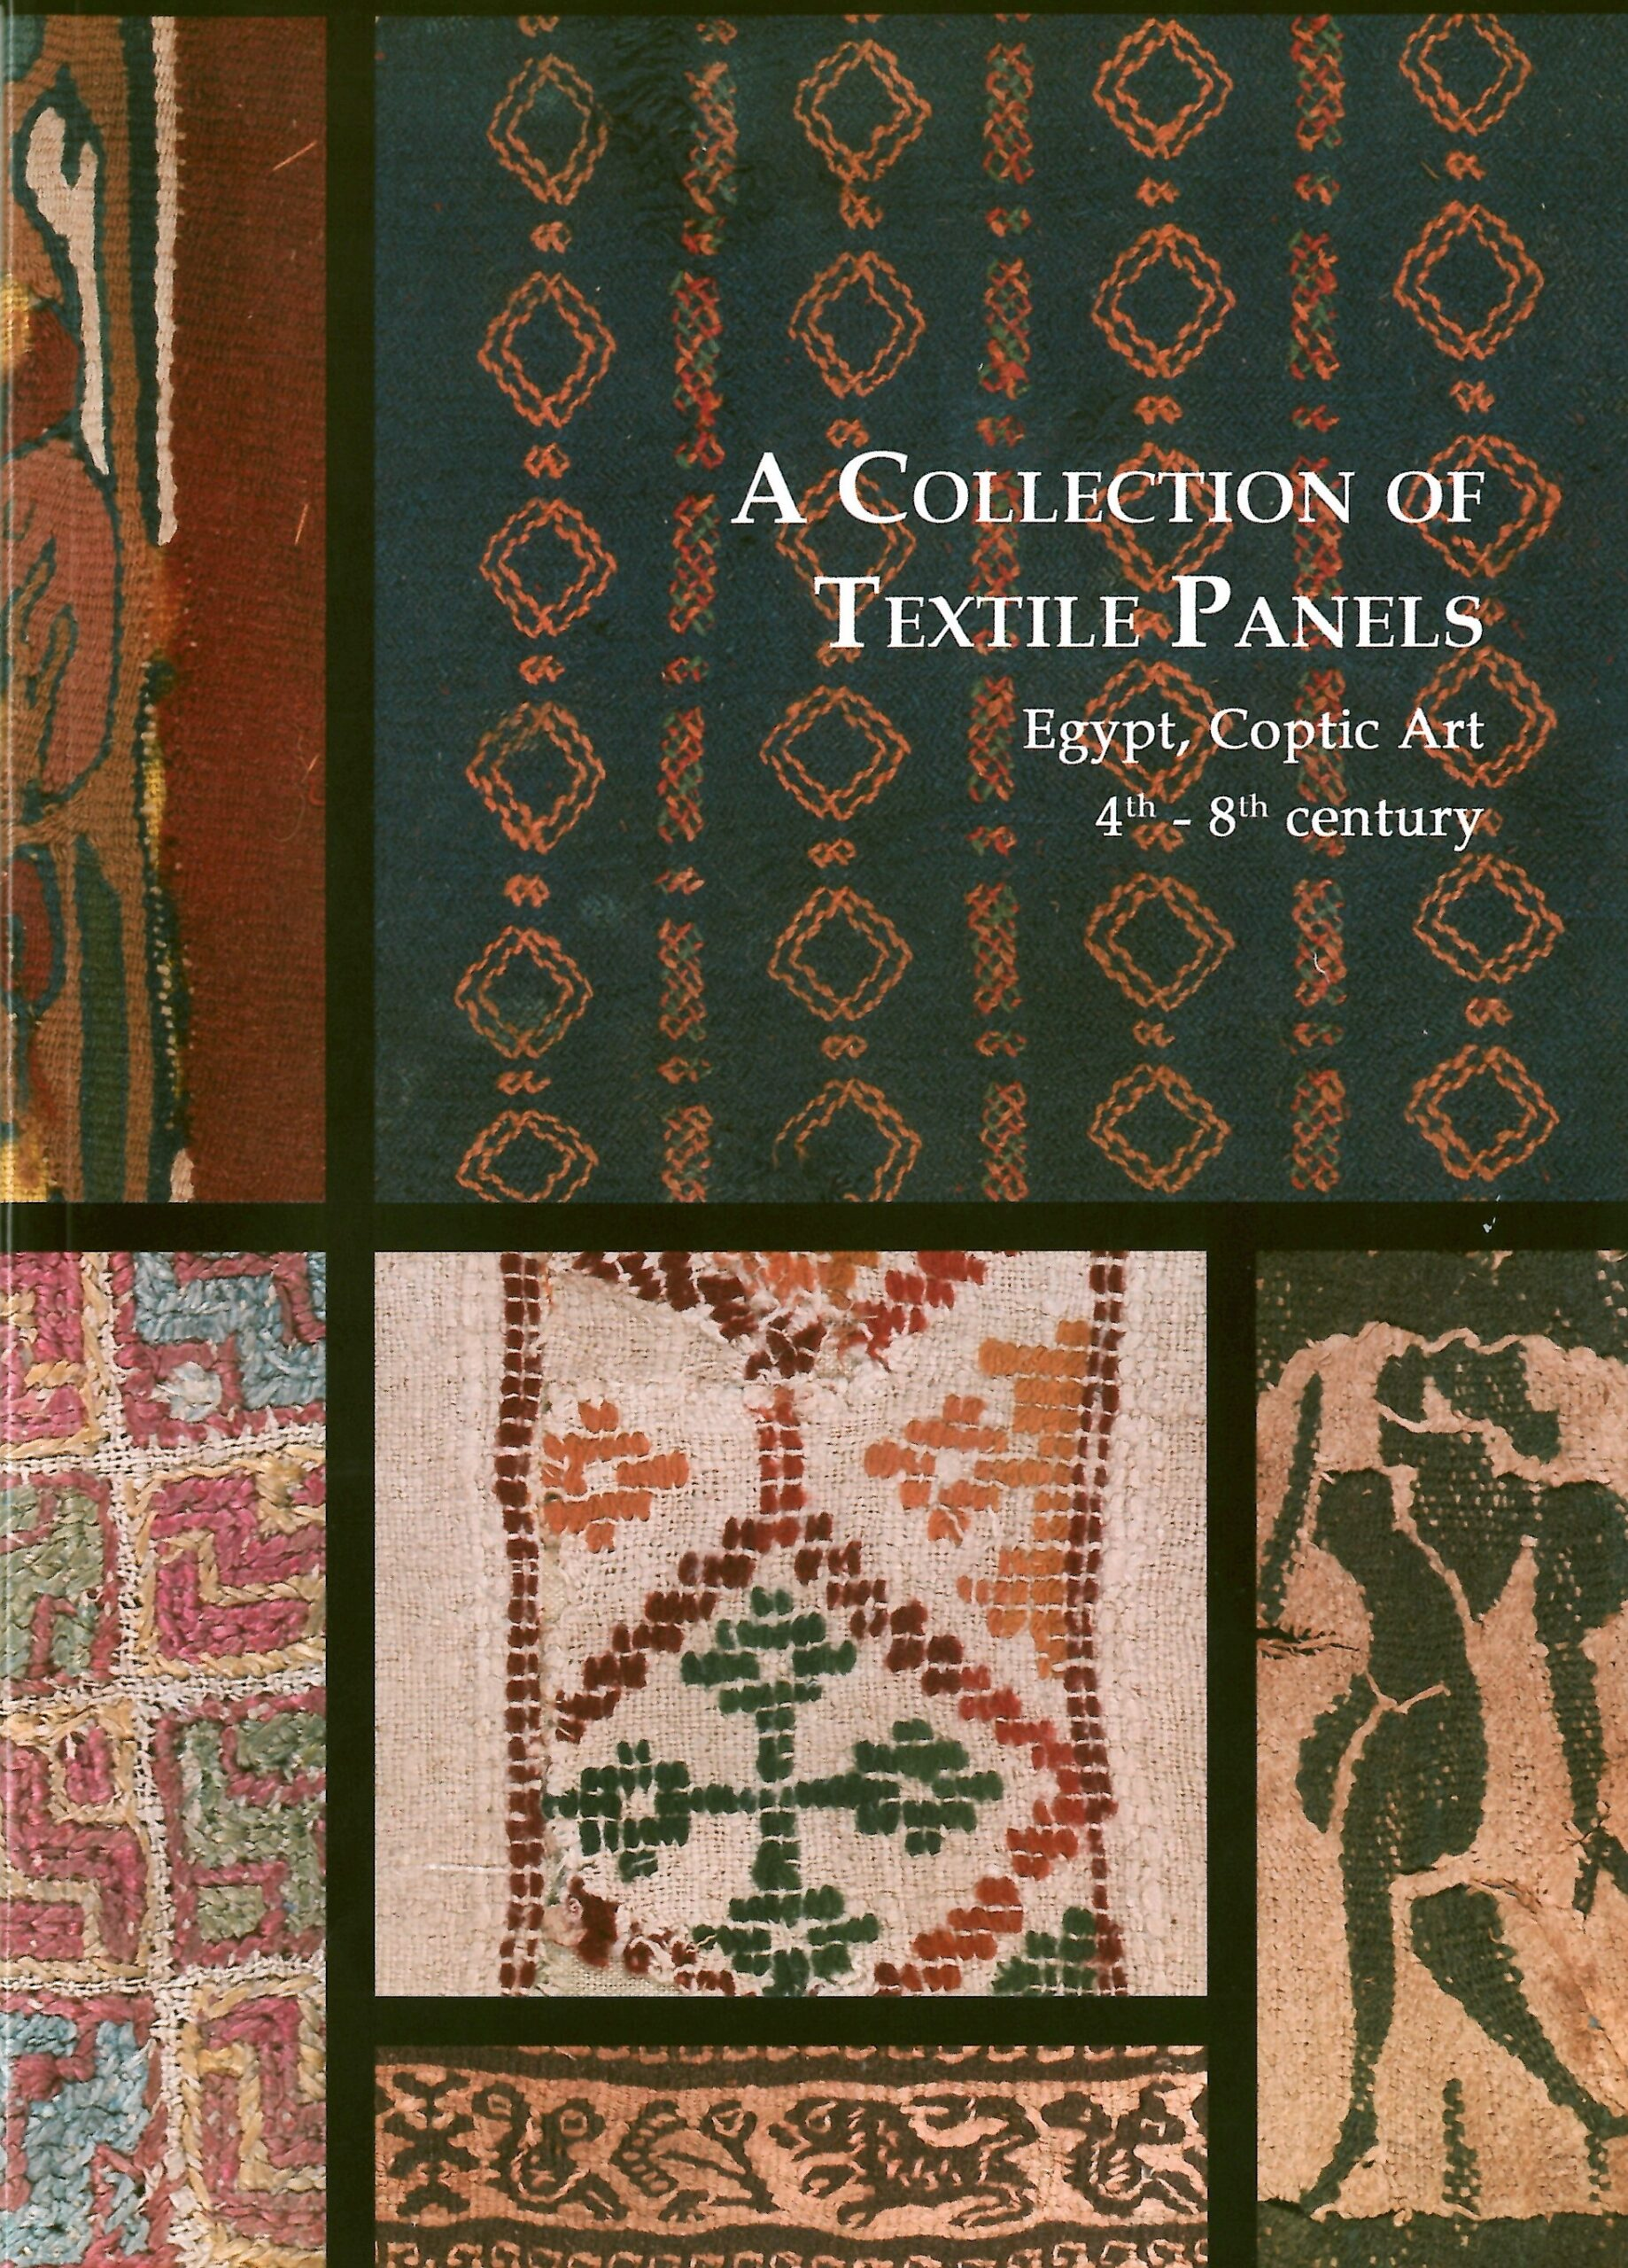 A Collection of Textile Panels